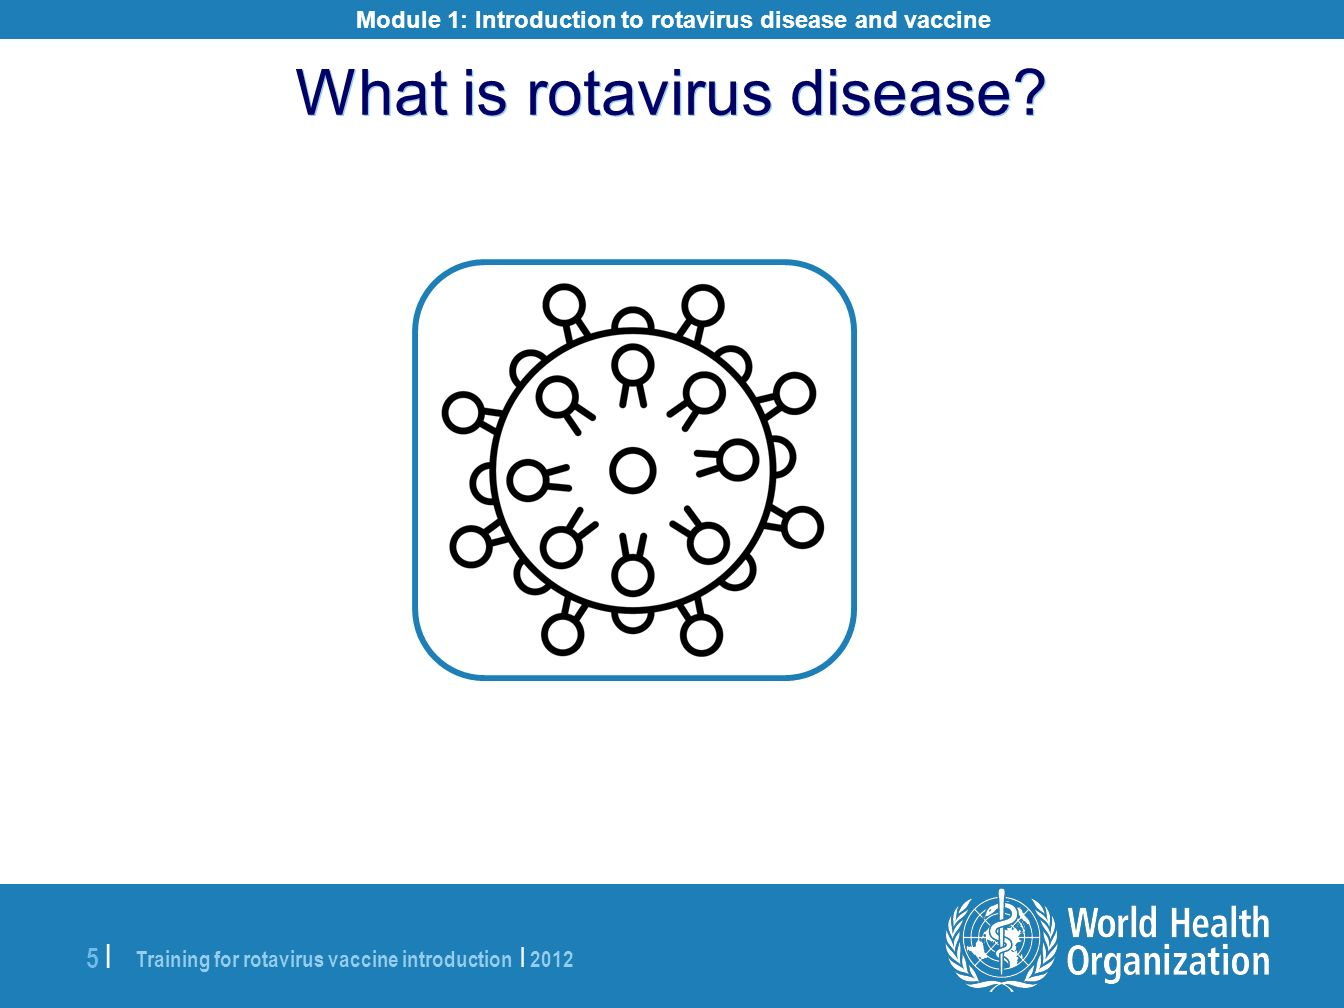 What is rotavirus disease